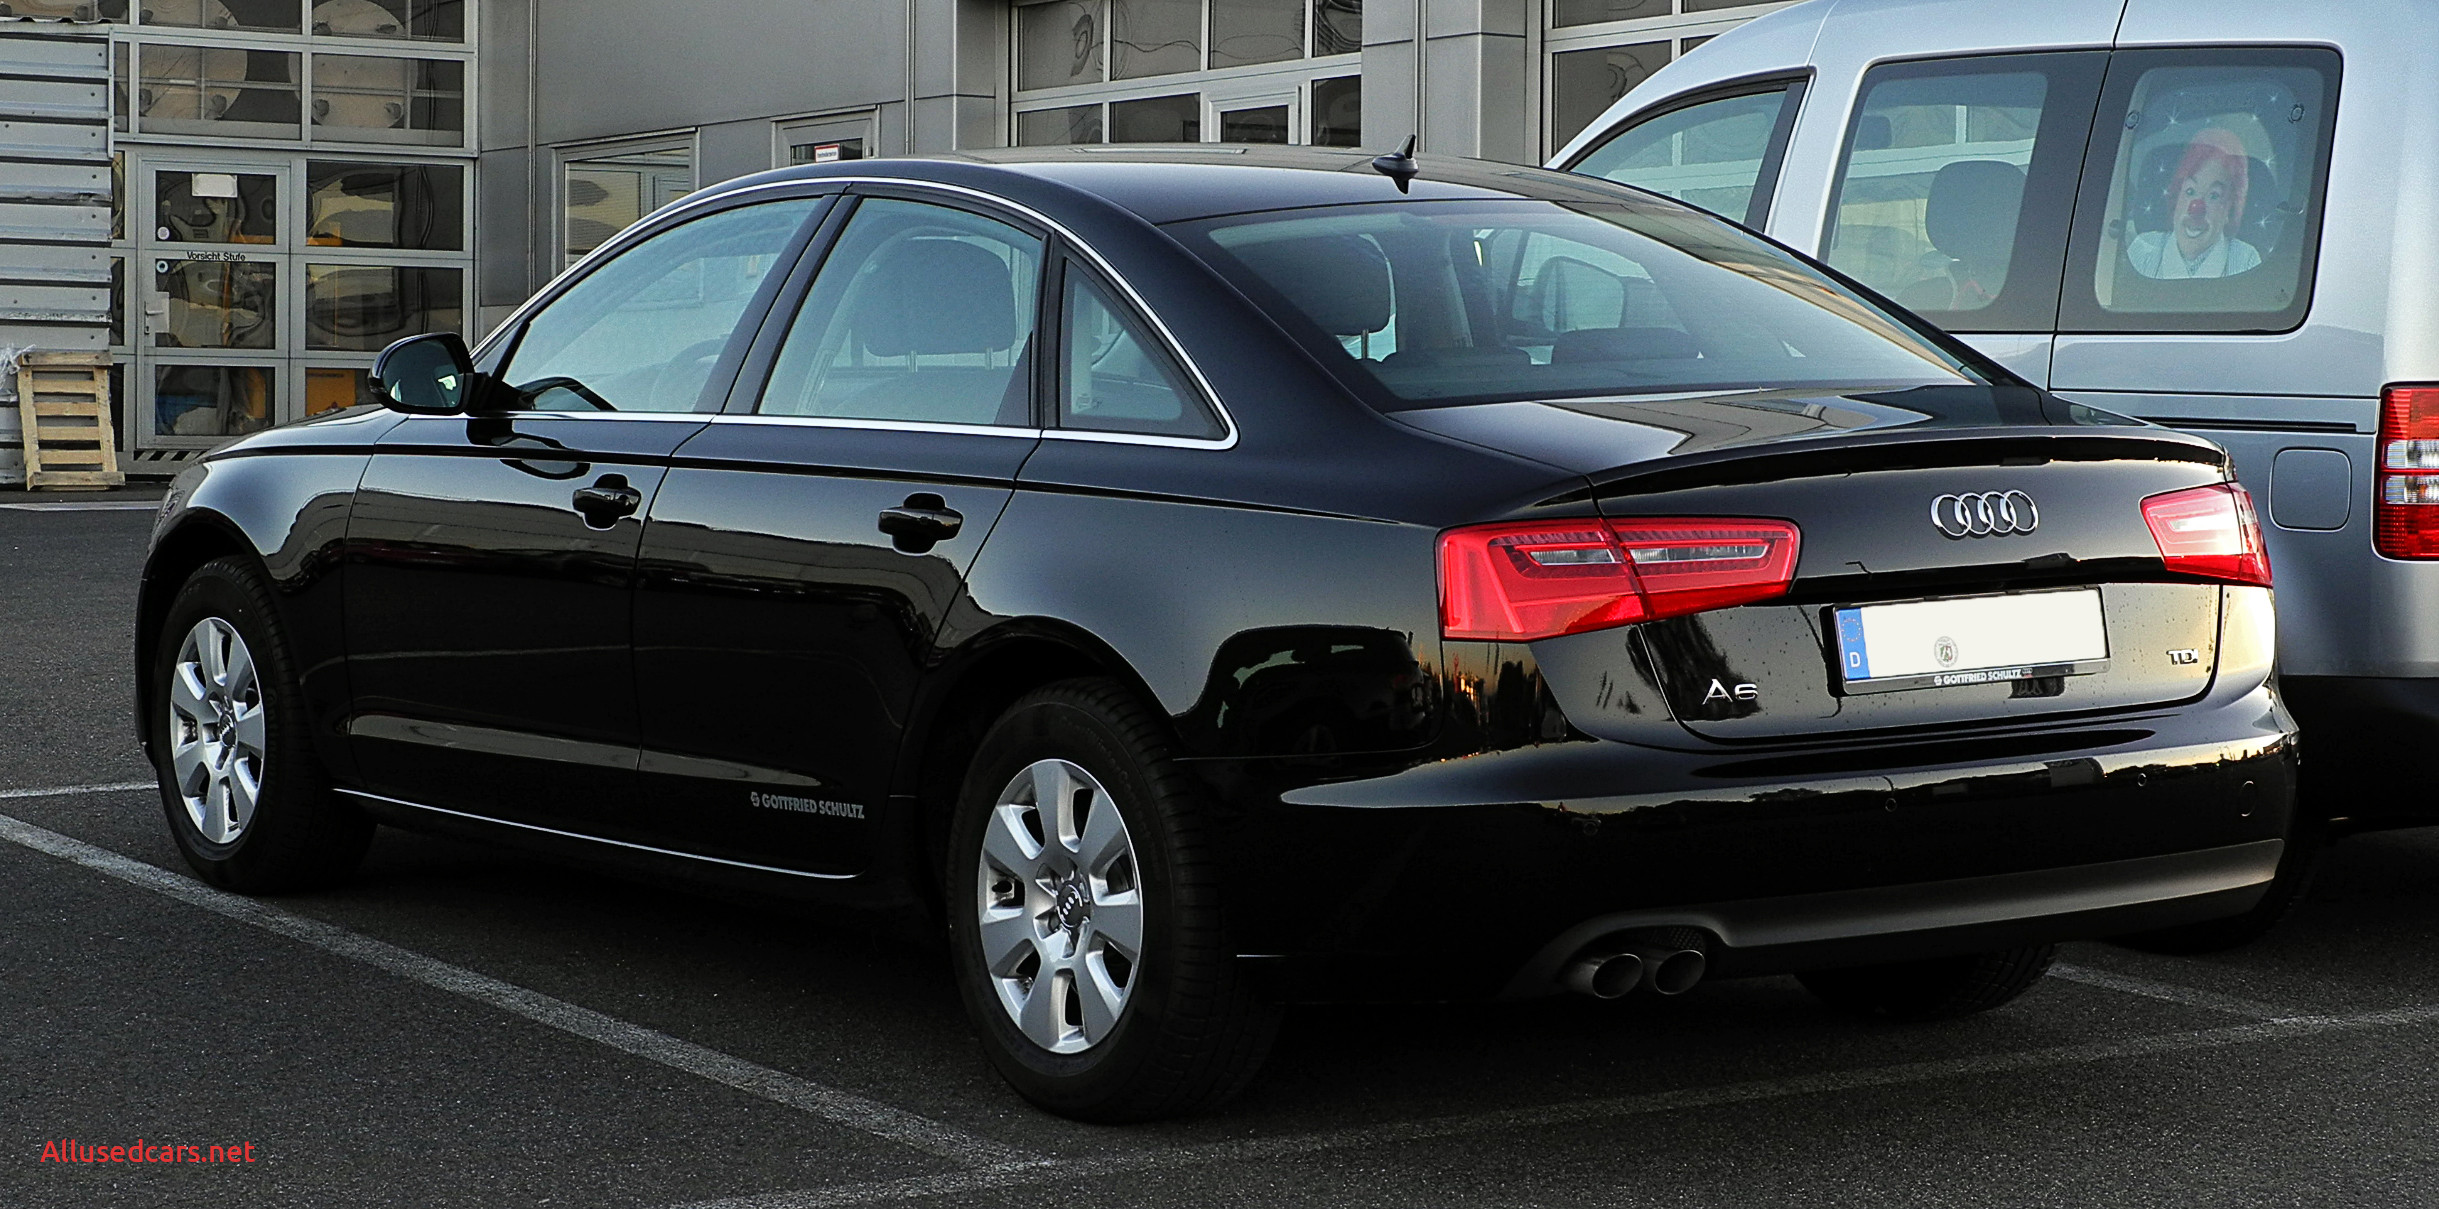 Used Audi A6 Fresh Audi A6 2020 Prices In Pakistan & Reviews